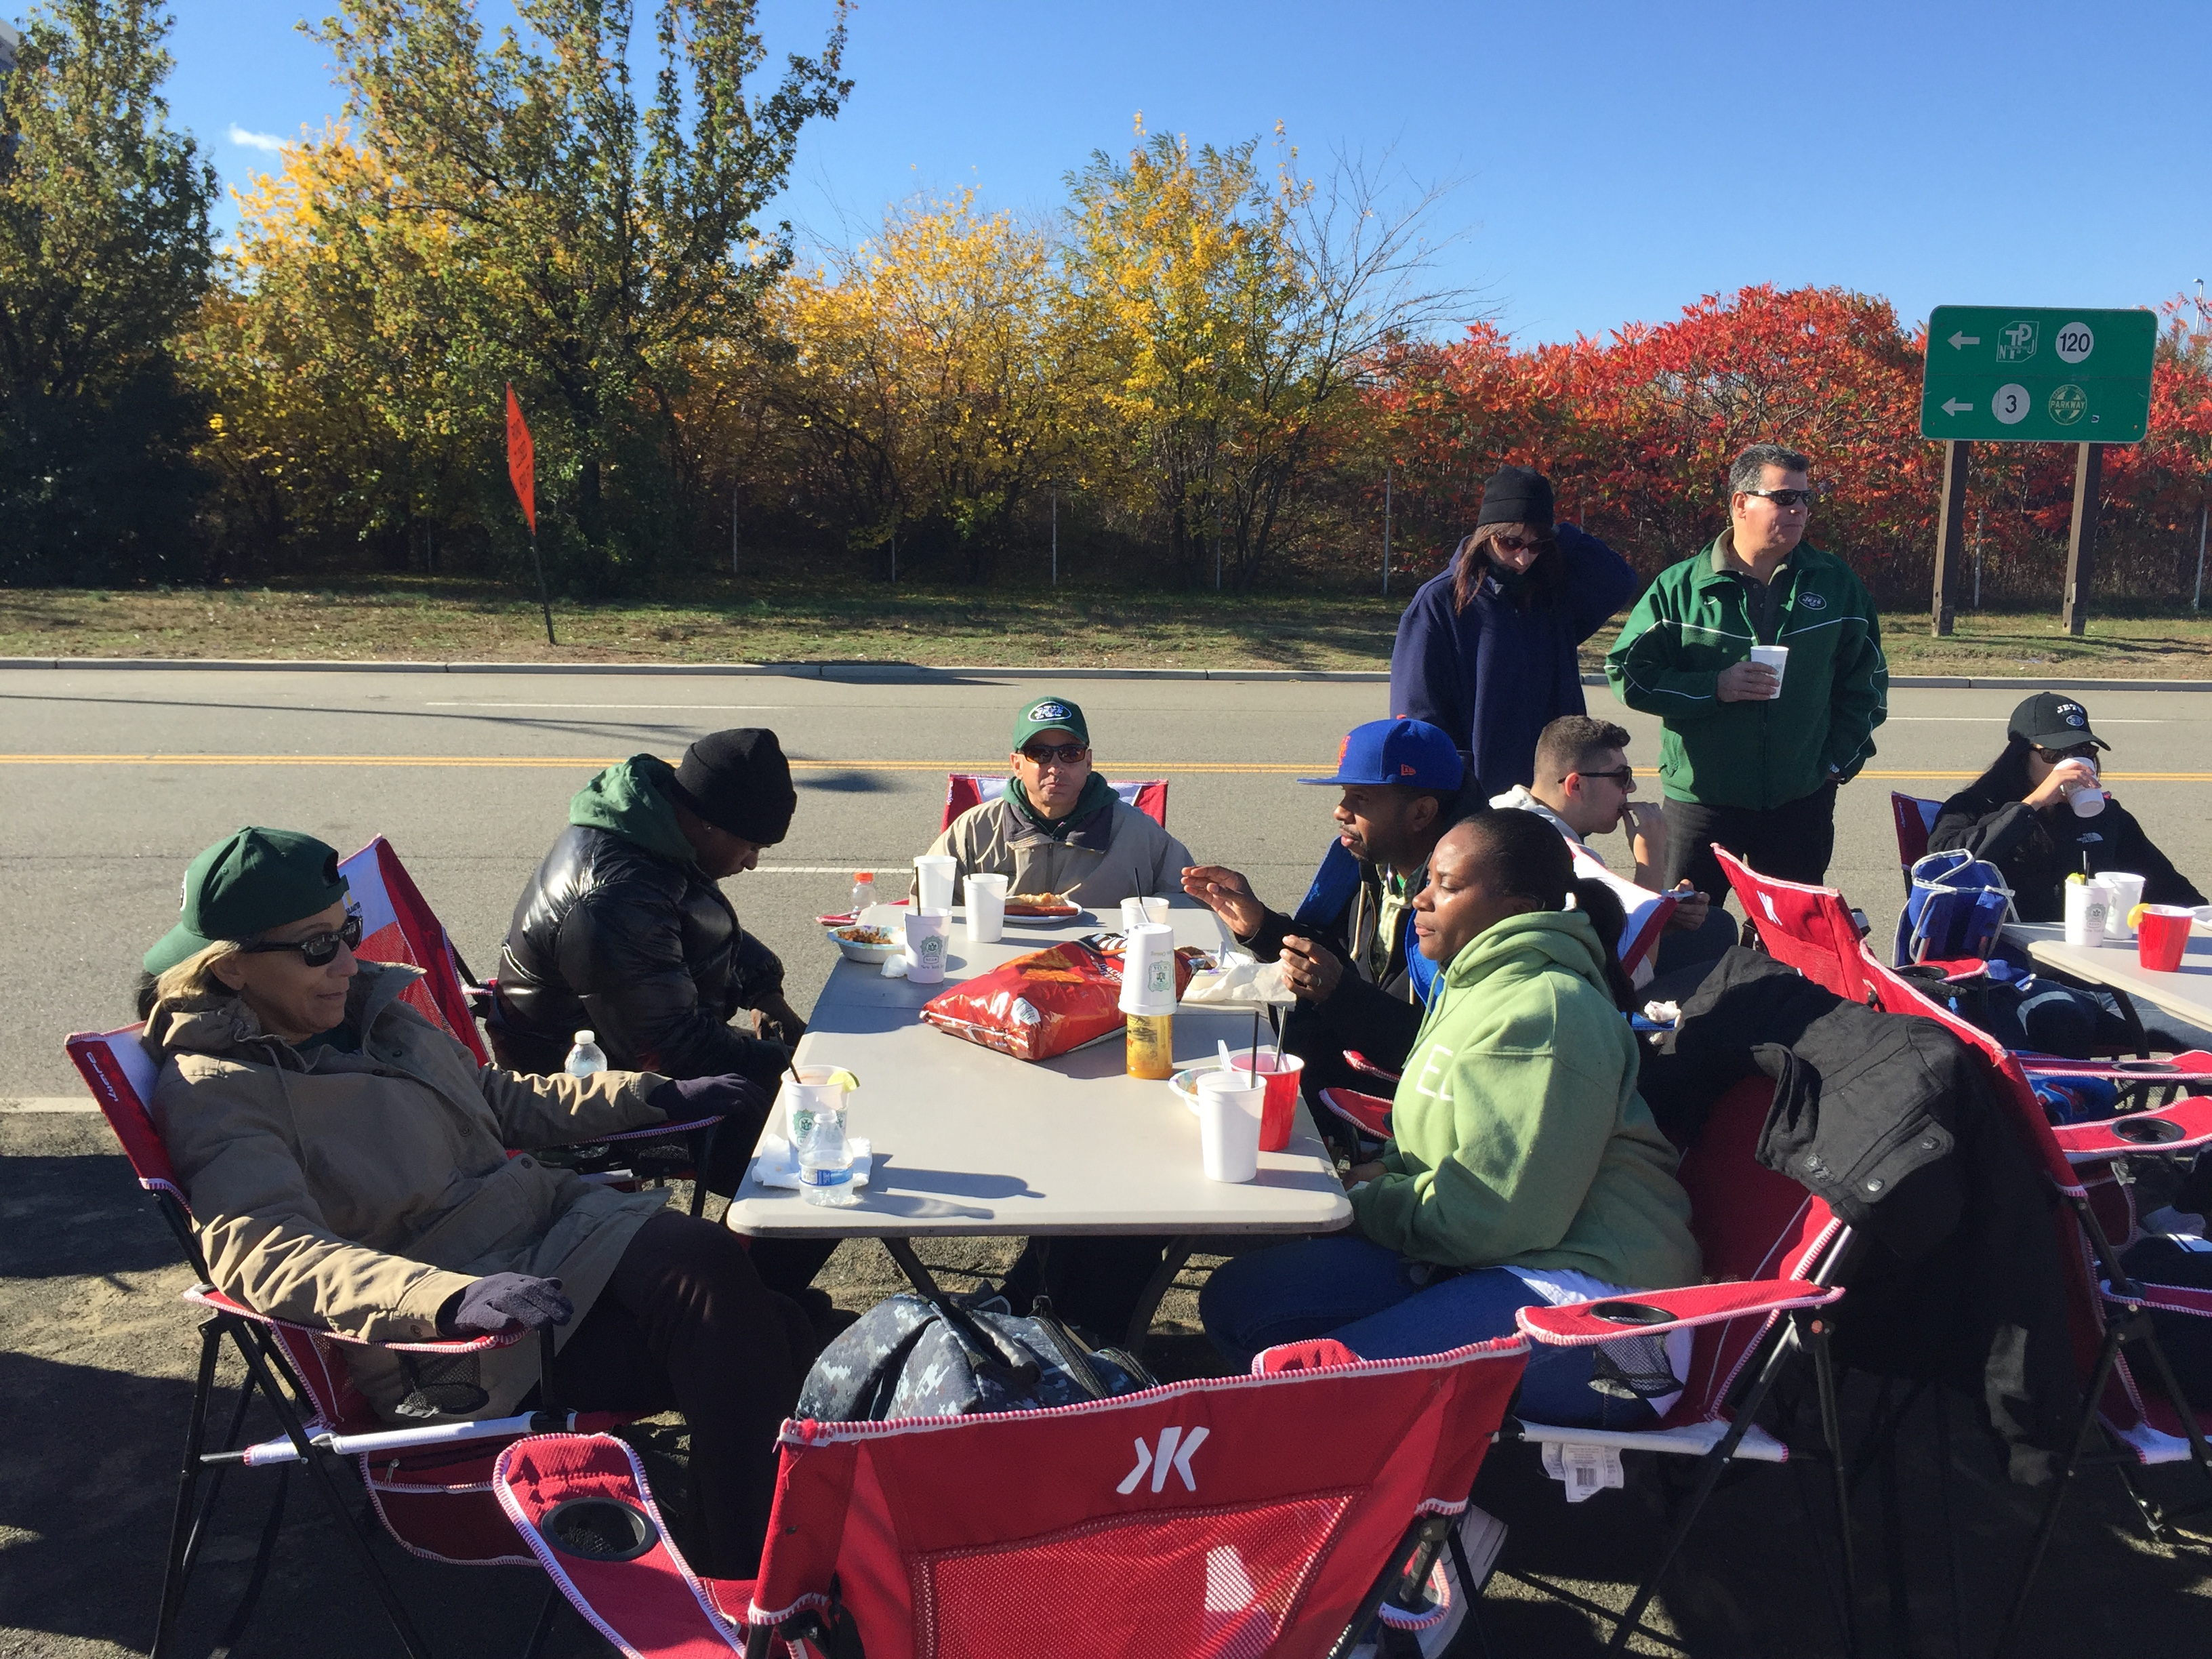 NY Jets Outing37